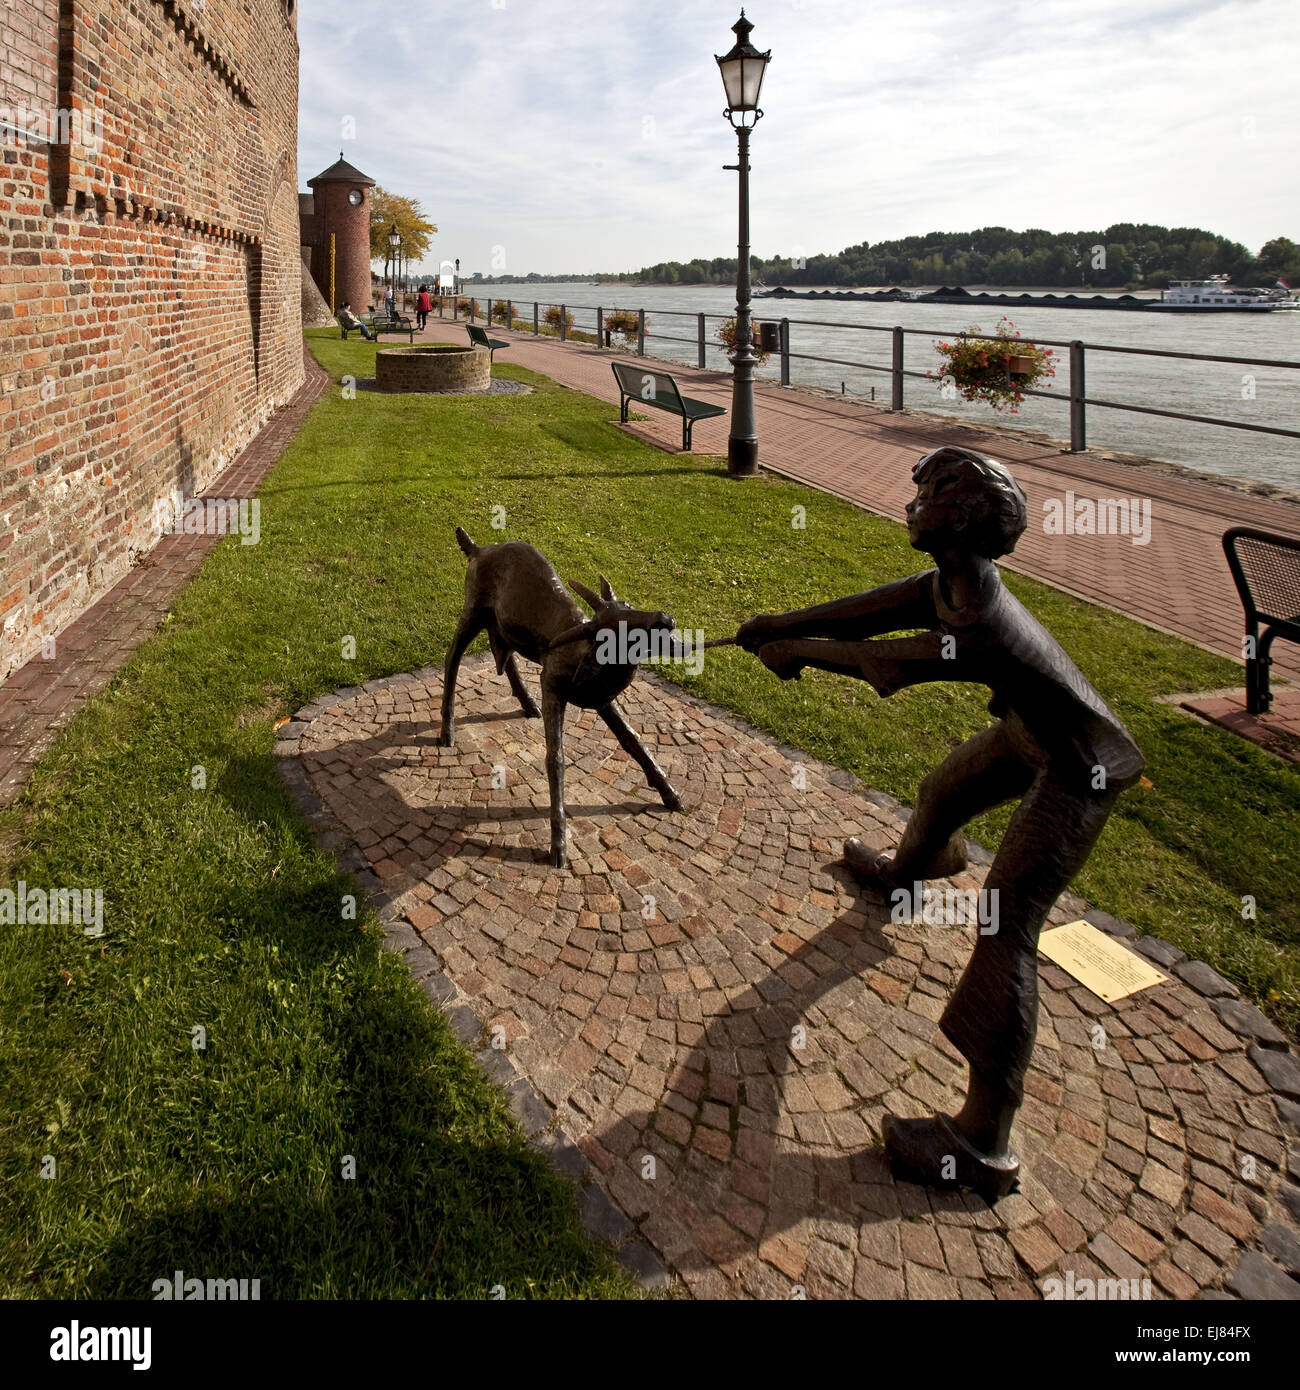 Sculpture on the city wall, Rees, Germany - Stock Image